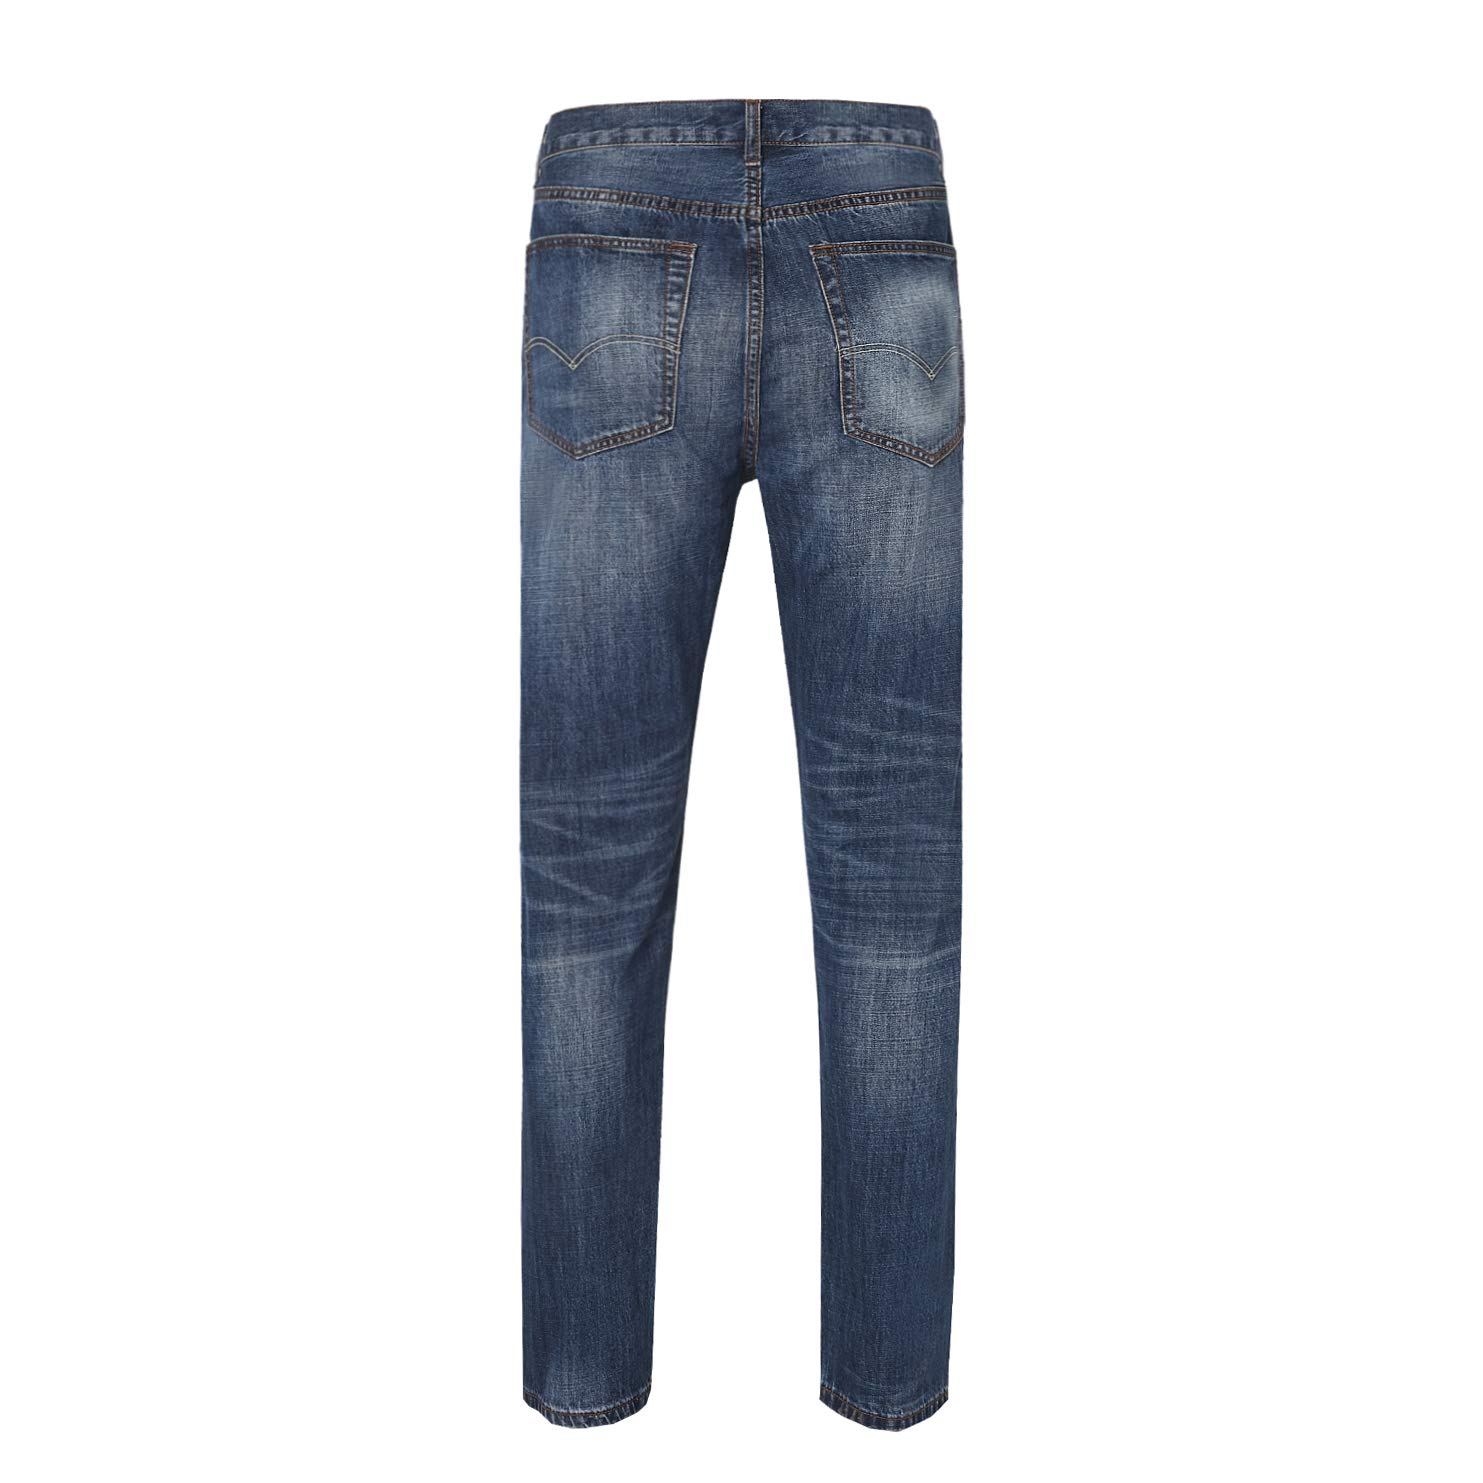 YITUOHEBANG Mens Relaxed Fit Jeans